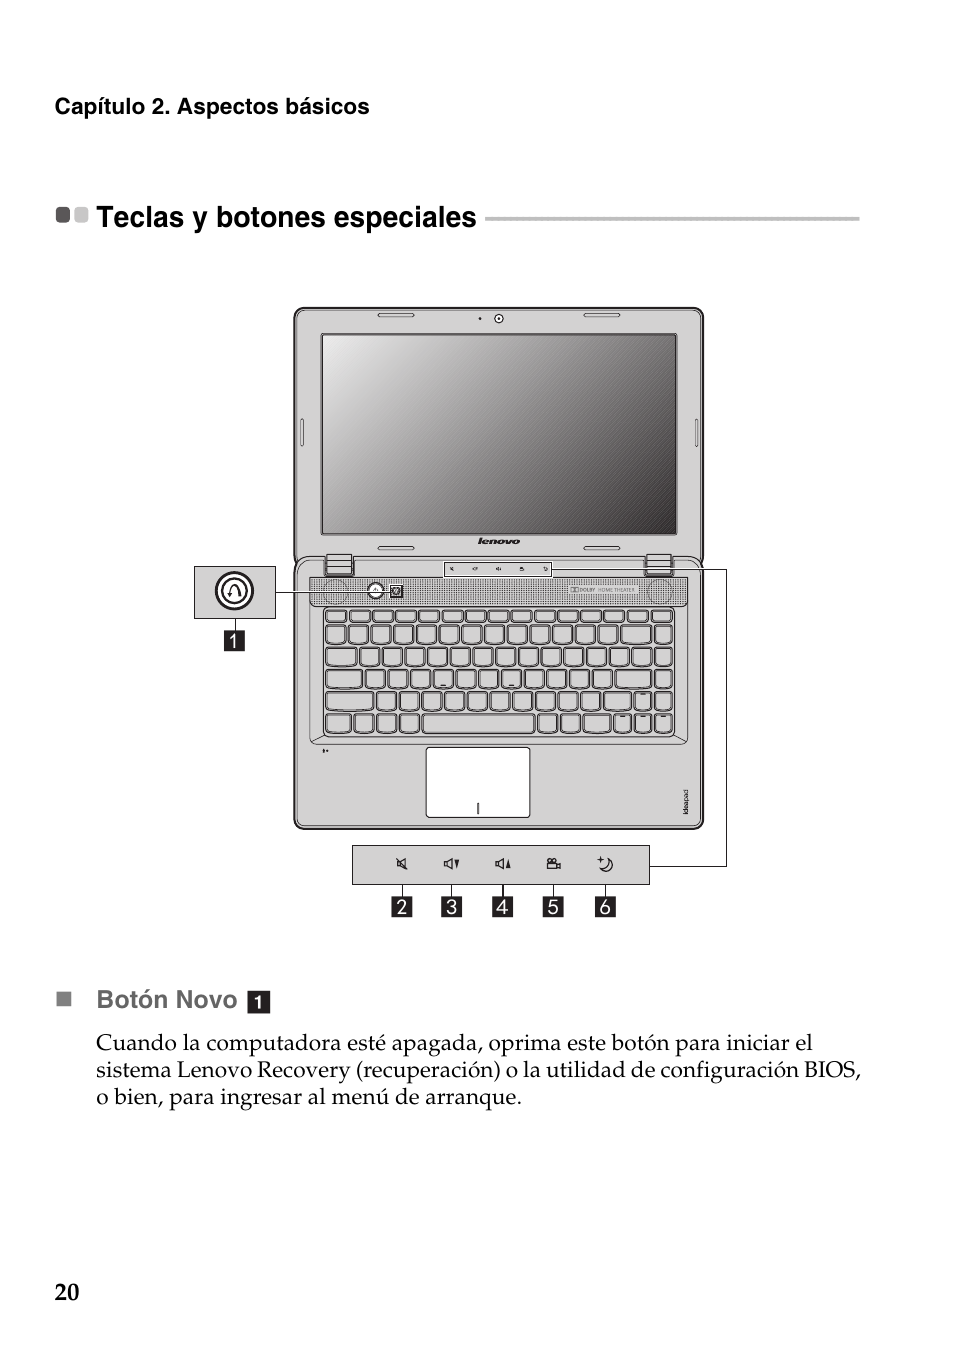 Teclas y botones especiales | Lenovo IdeaPad Z485 Notebook Manual